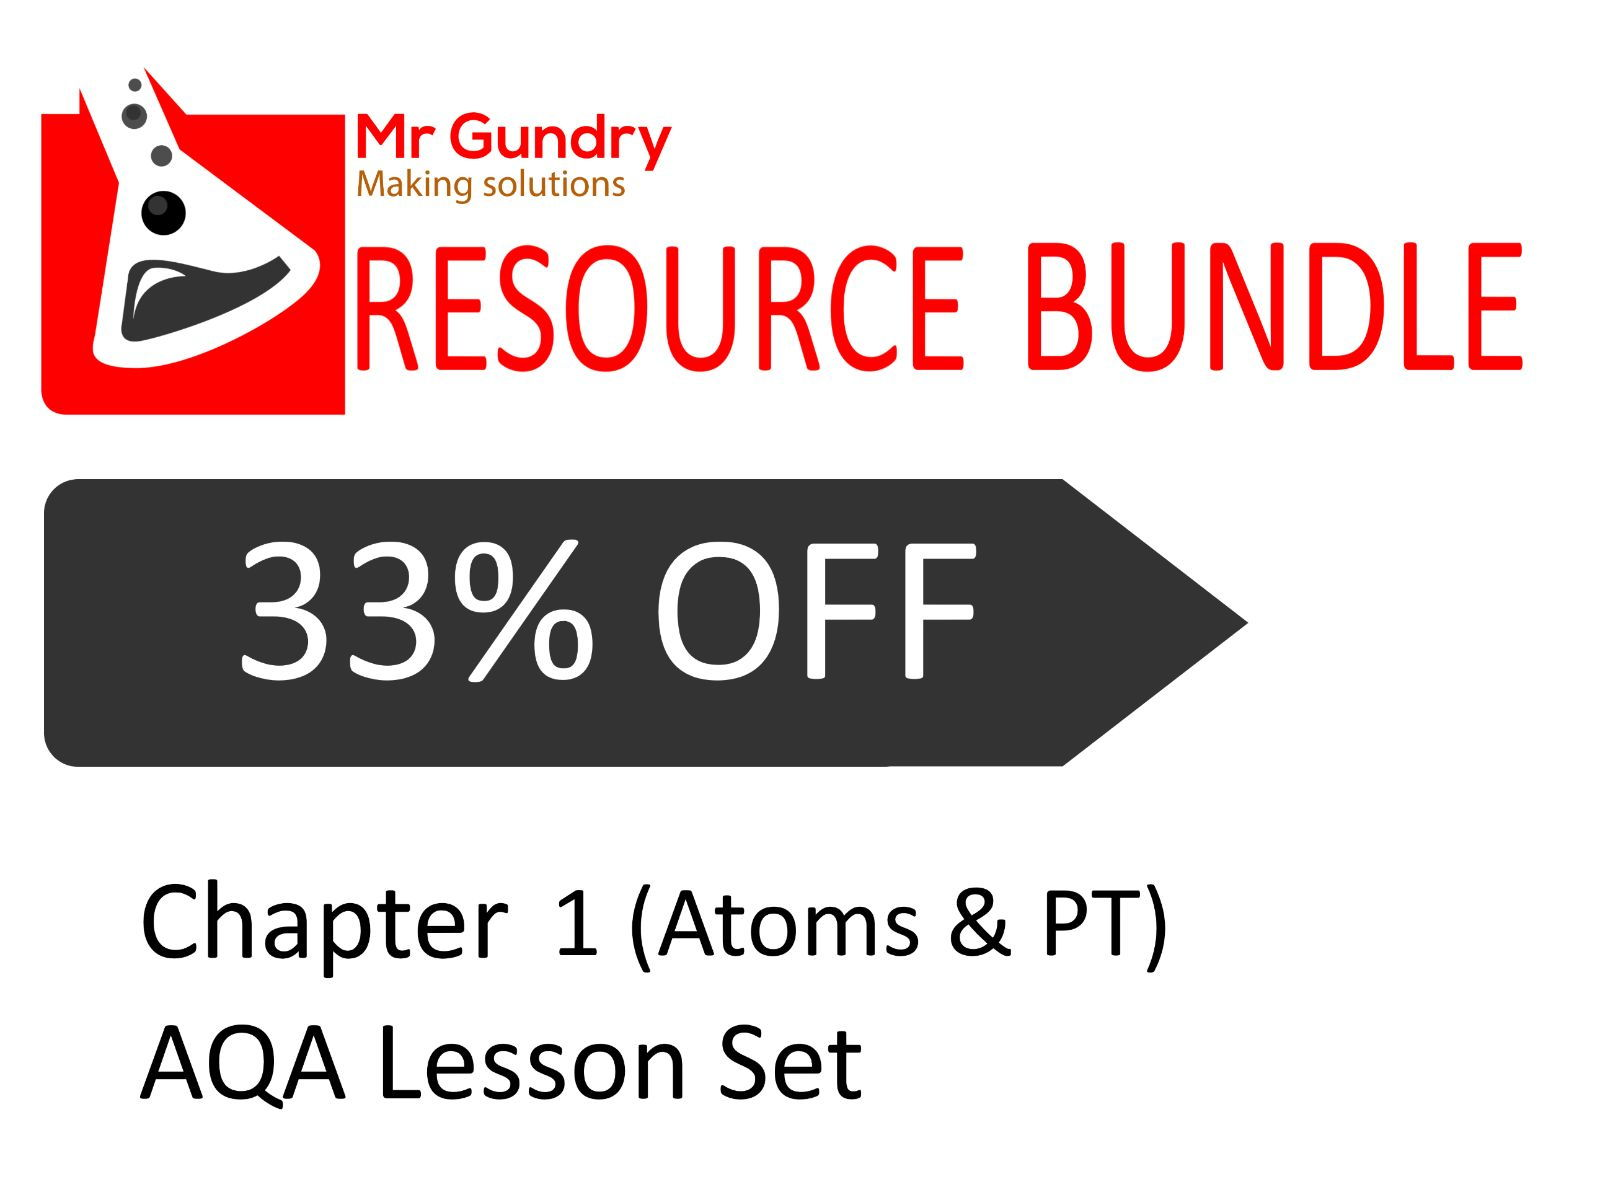 AQA Chapter 1 (Atoms & PT) Lesson Set